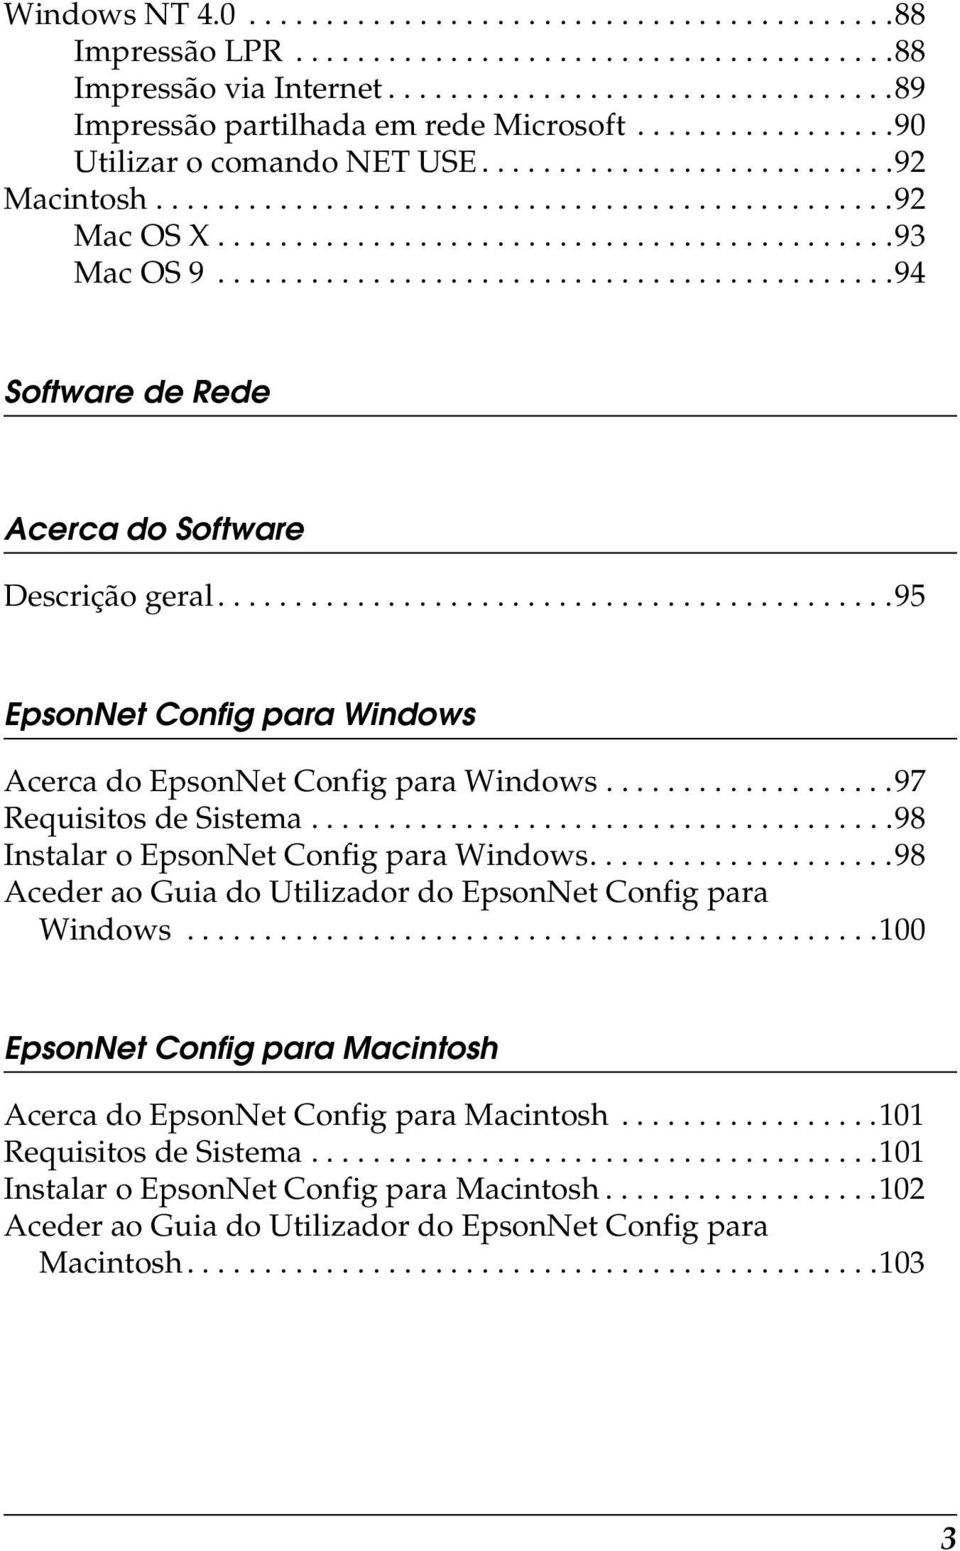 ...........................................94 Software de Rede Acerca do Software Descrição geral............................................95 EpsonNet Config para Windows Acerca do EpsonNet Config para Windows.